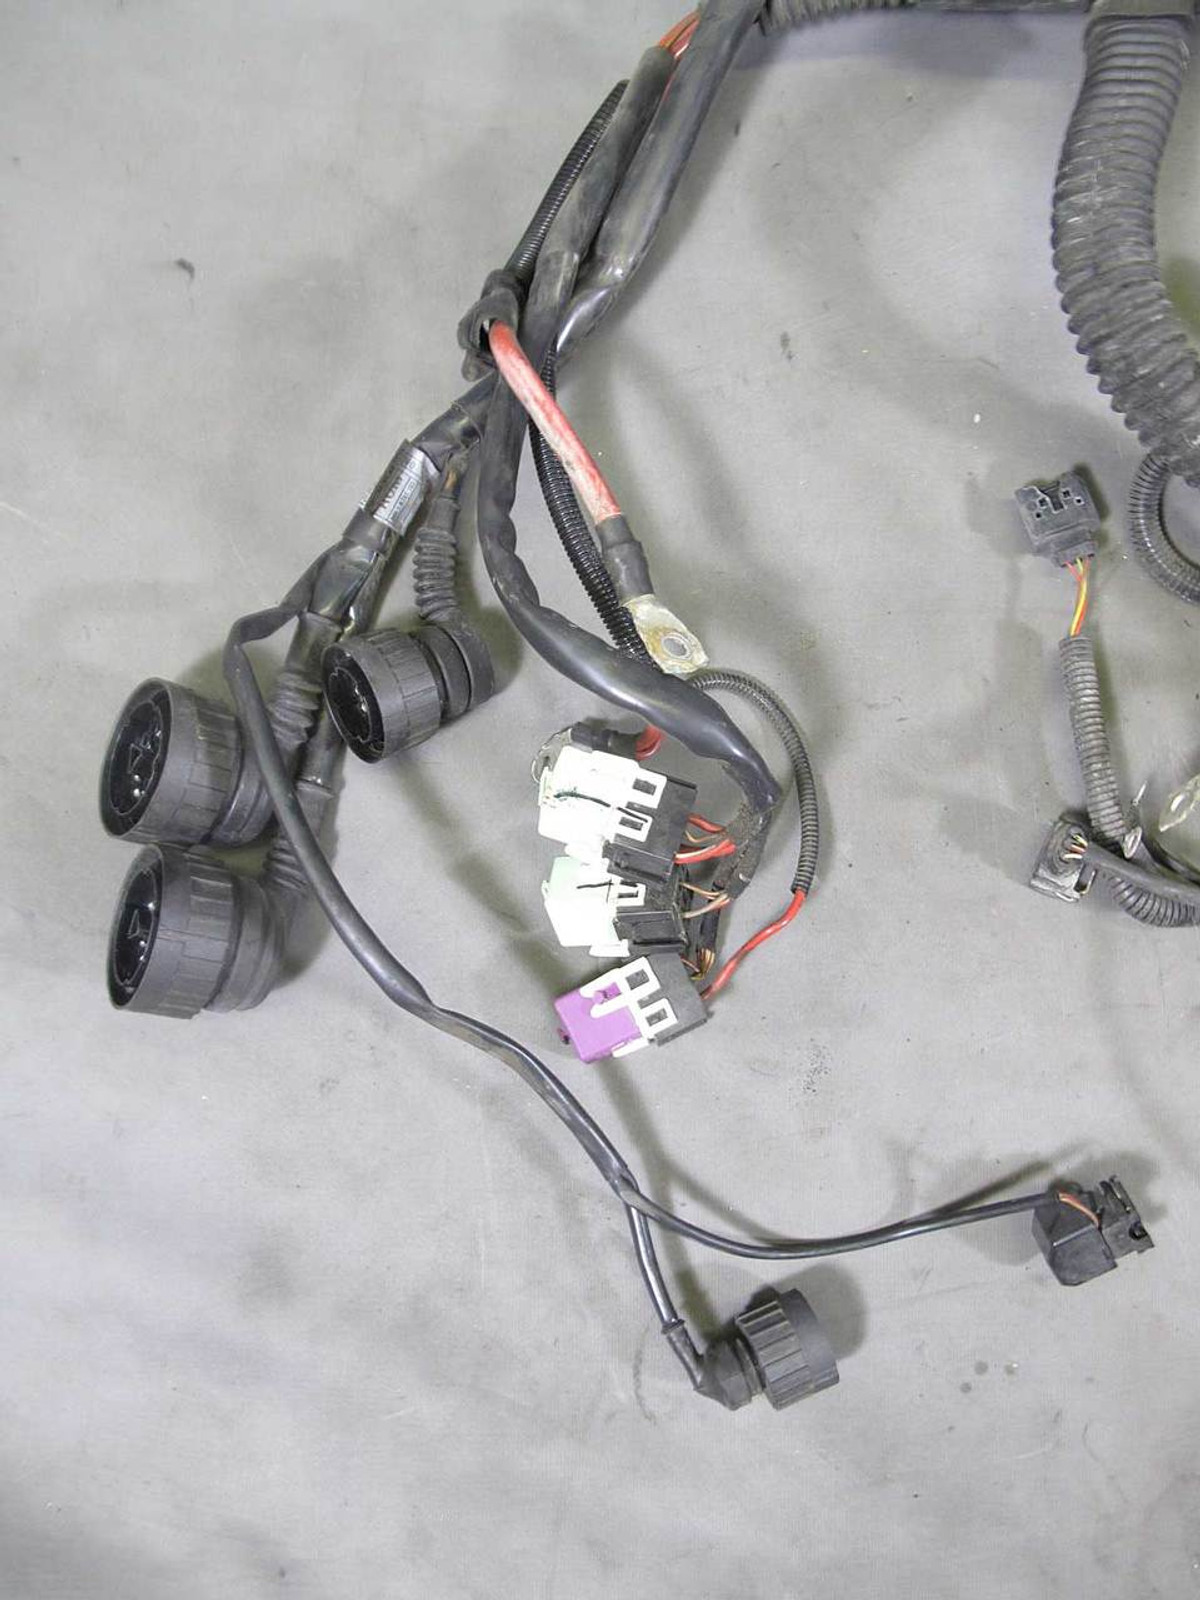 hight resolution of wire harness cover m3 wiring diagram view e30 m3 wiring harness cover wire harness cover m3